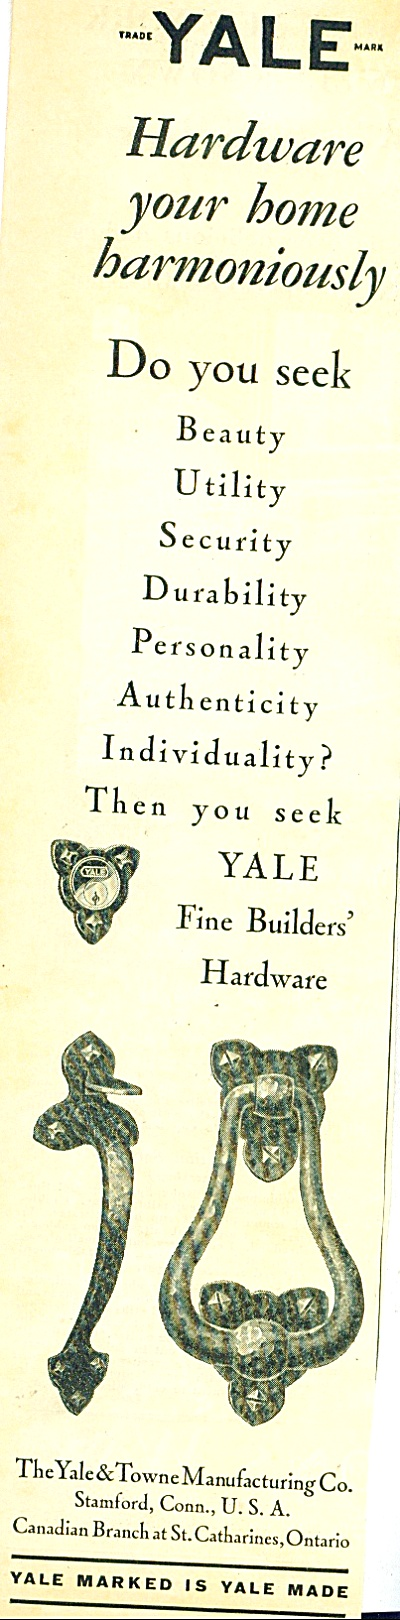 1928 YALE Door Lock Hardware AD (Image1)